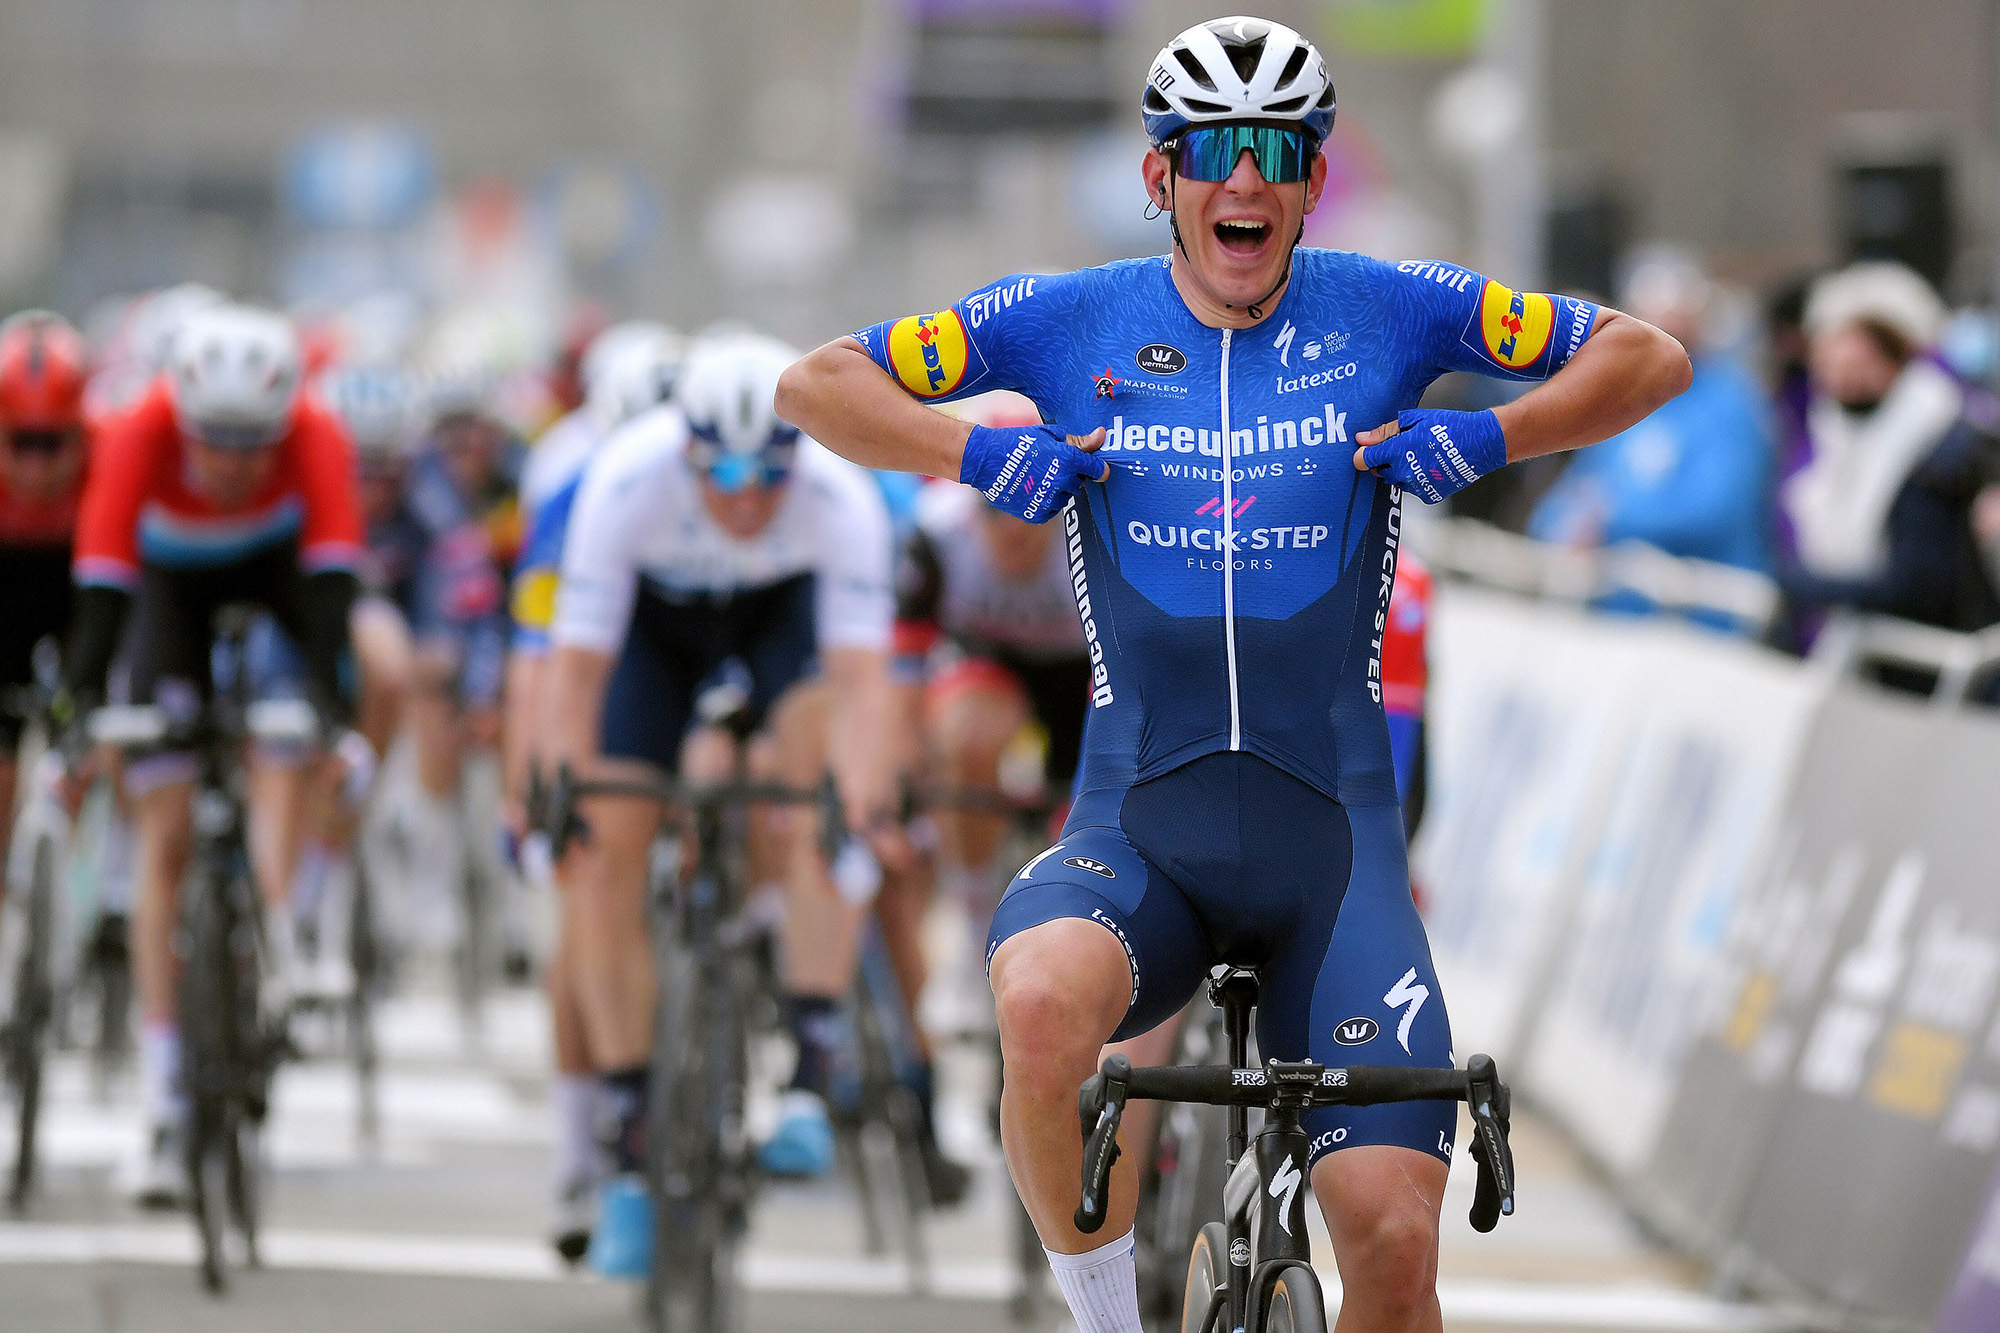 NINOVE, BELGIUM - FEBRUARY 27: Arrival / Davide Ballerini of Italy and Team Deceuninck - Quick-Step Celebration, during the 76th Omloop Het Nieuwsblad 2021, Men's Race a 200,5km race from Ghent to Ninove / @OmloopHNB / #OHN21 / @FlandersClassic / on February 27, 2021 in Ninove, Belgium. (Photo by Luc Claessen/Getty Images)